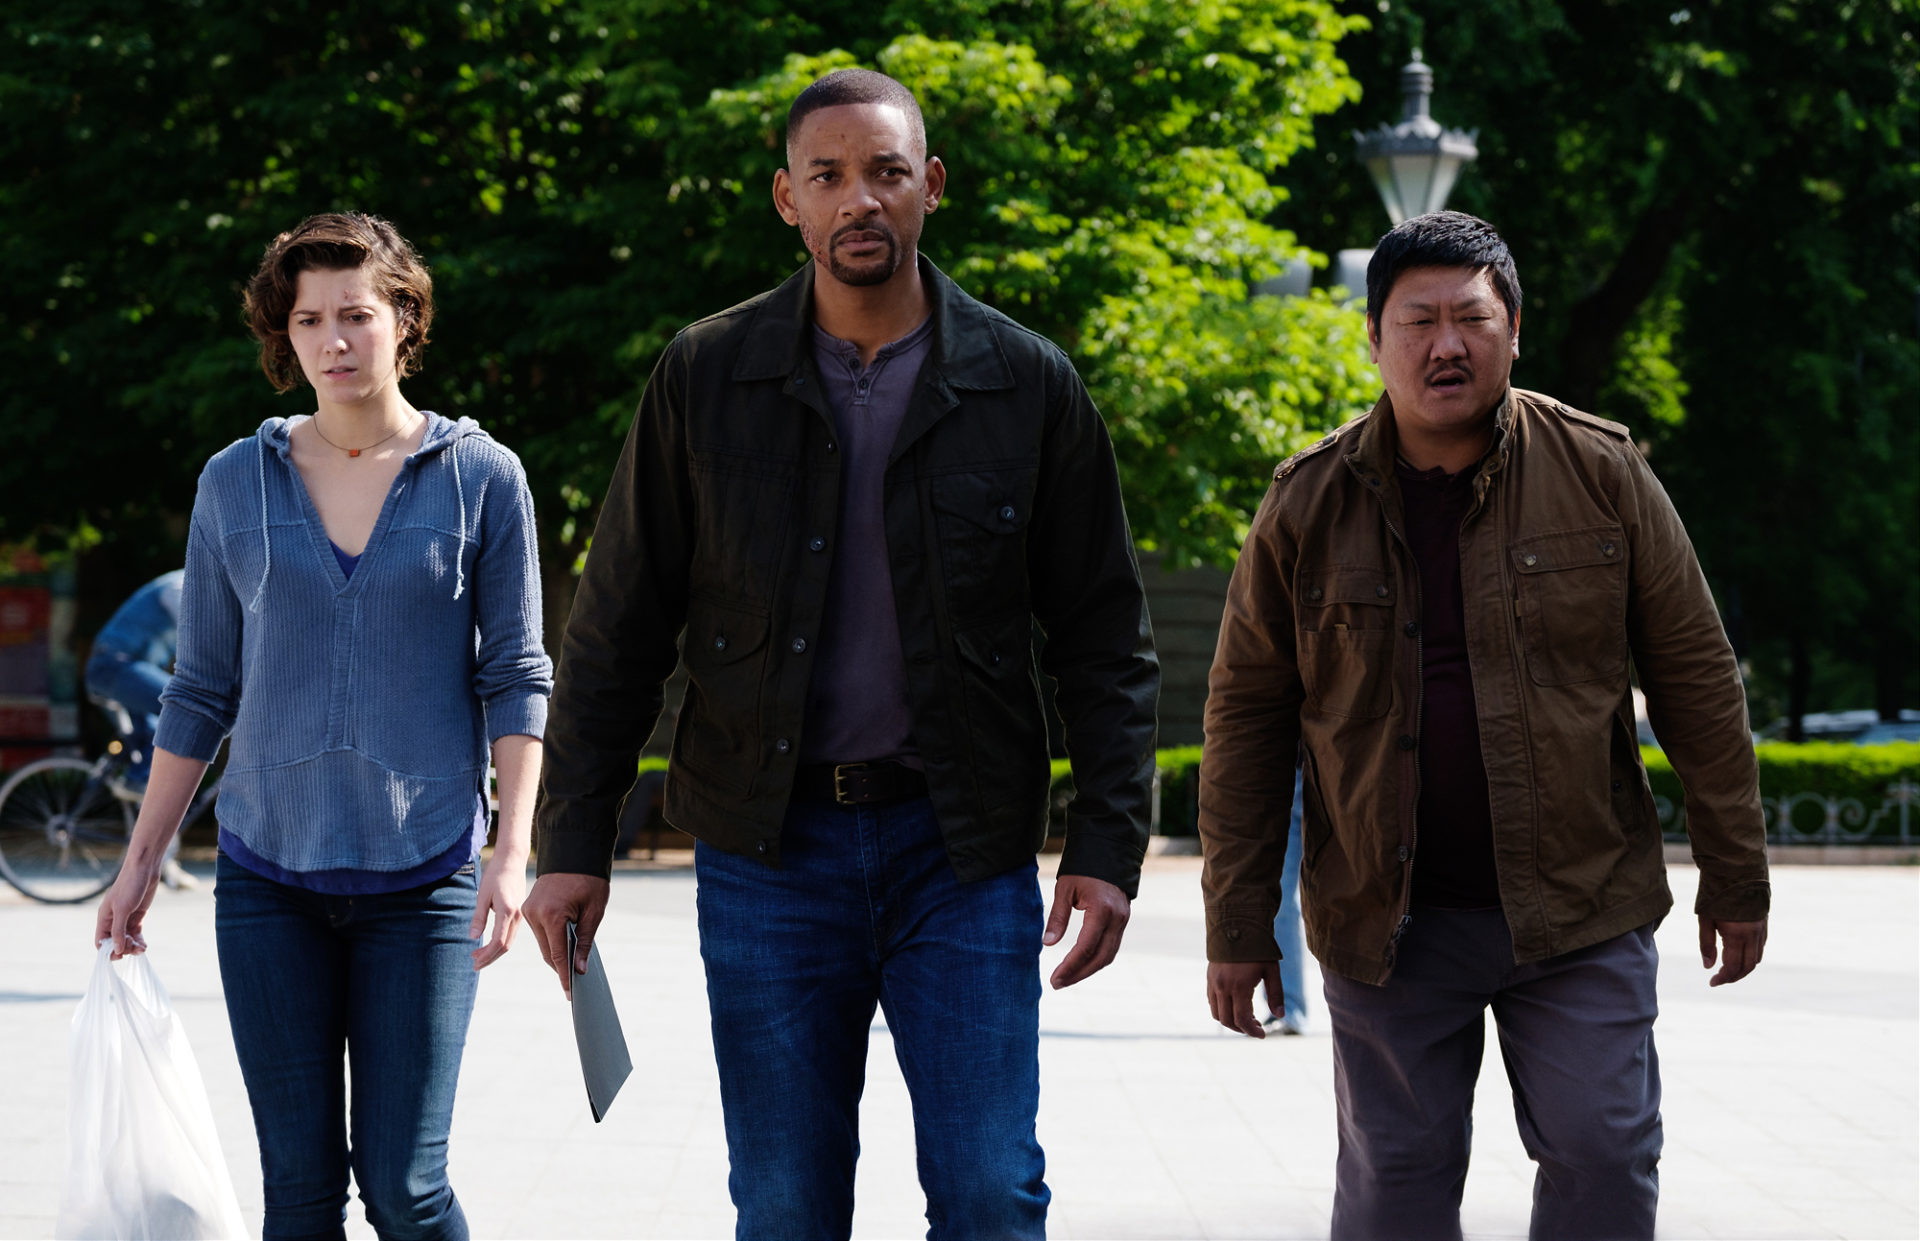 Mary Elizabeth Winstead, Will Smith, and Benedict Wong in Gemini Man from Paramount Pictures, Skydance and Jerry Bruckheimer Films.